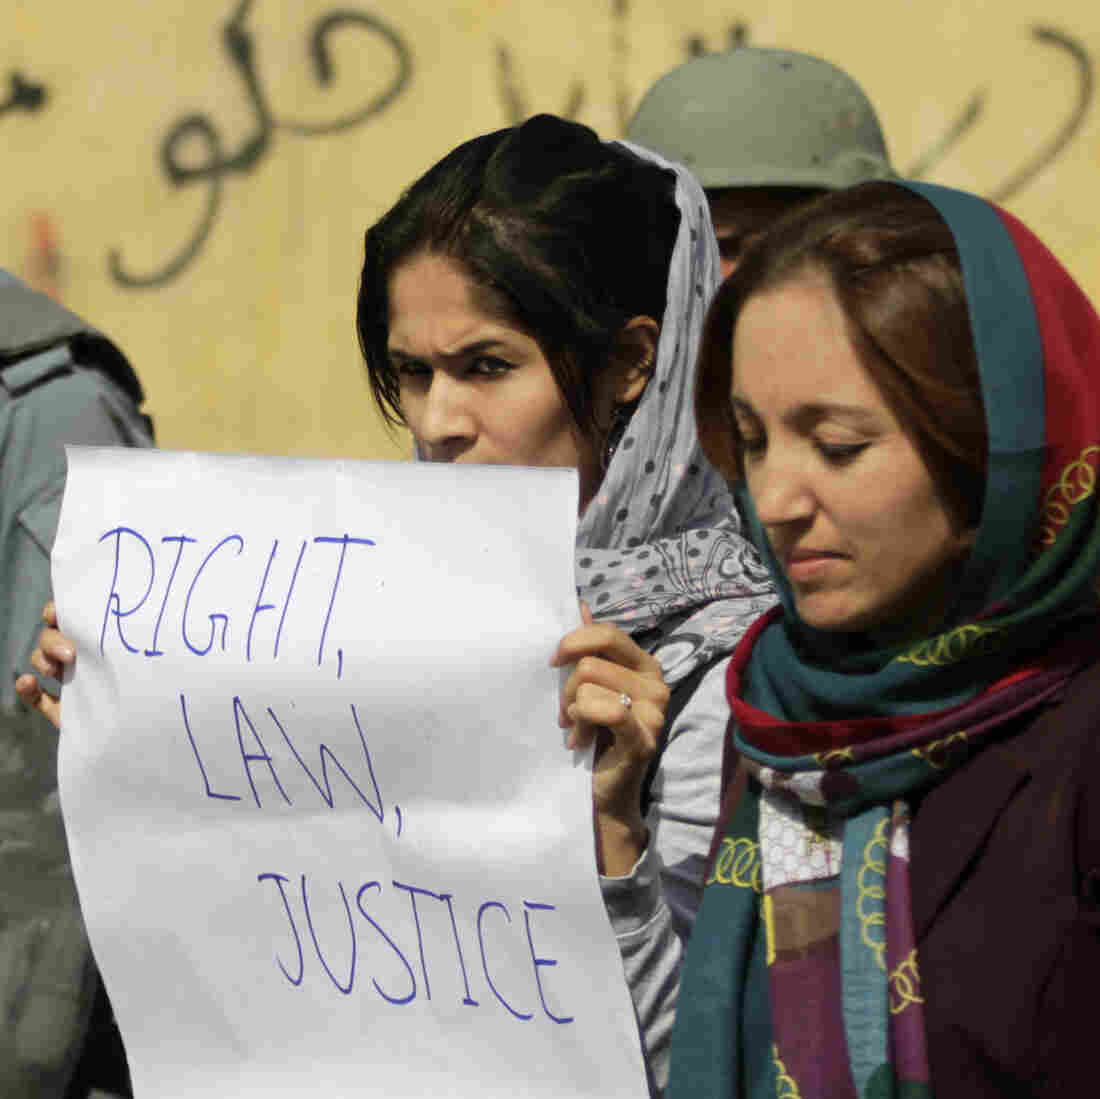 Students in Kabul protest violence against women in Kabul last fall. Afghan President Hamid Karzai issued a decree in 2009 protecting women's rights, but parliament has not passed a law making the decree permanent.